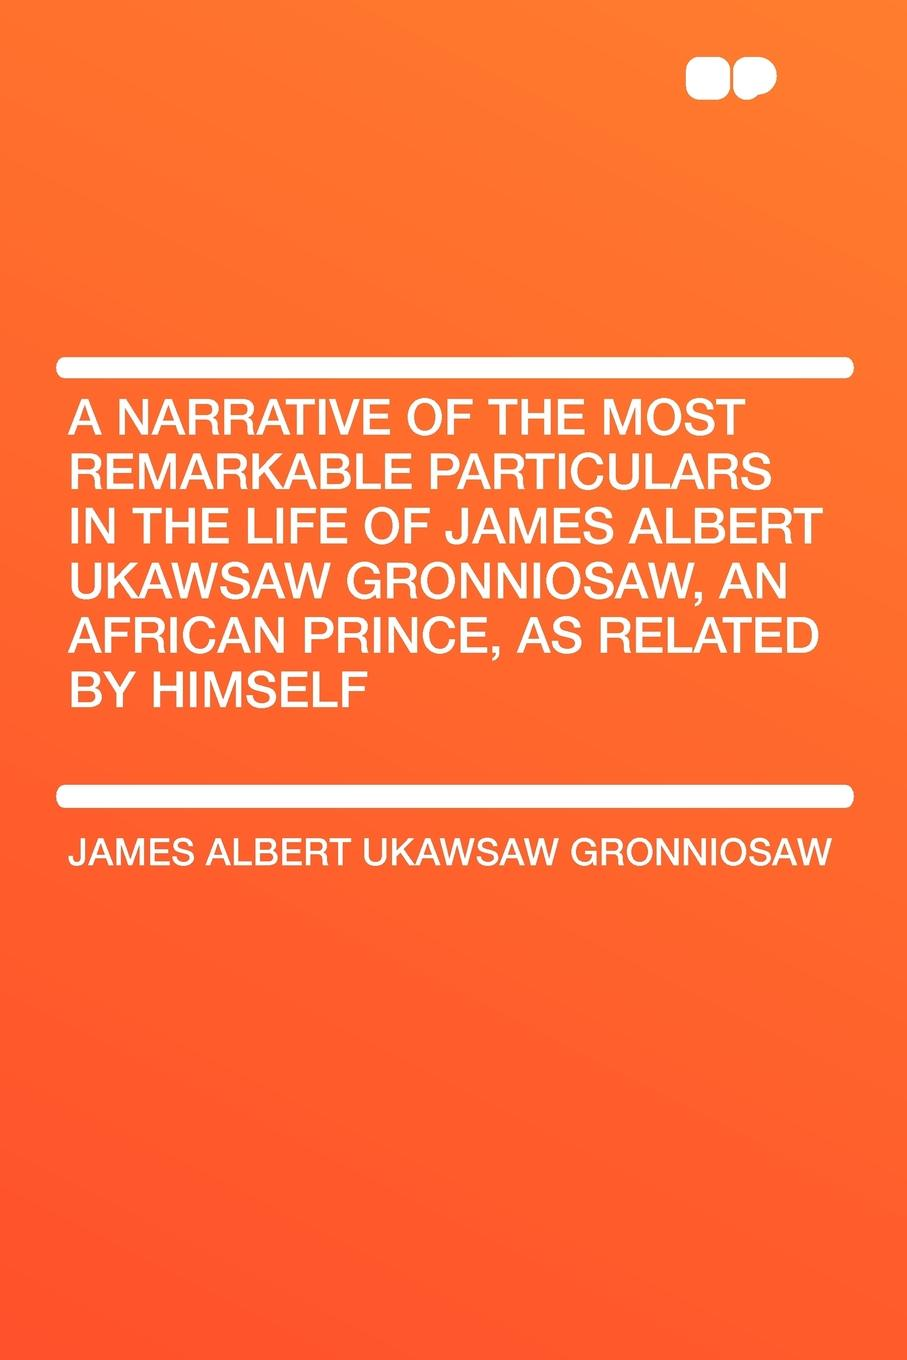 James Albert Ukawsaw Gronniosaw A Narrative of the Most Remarkable Particulars in Life Gronniosaw, an African Prince, as Related by Himself